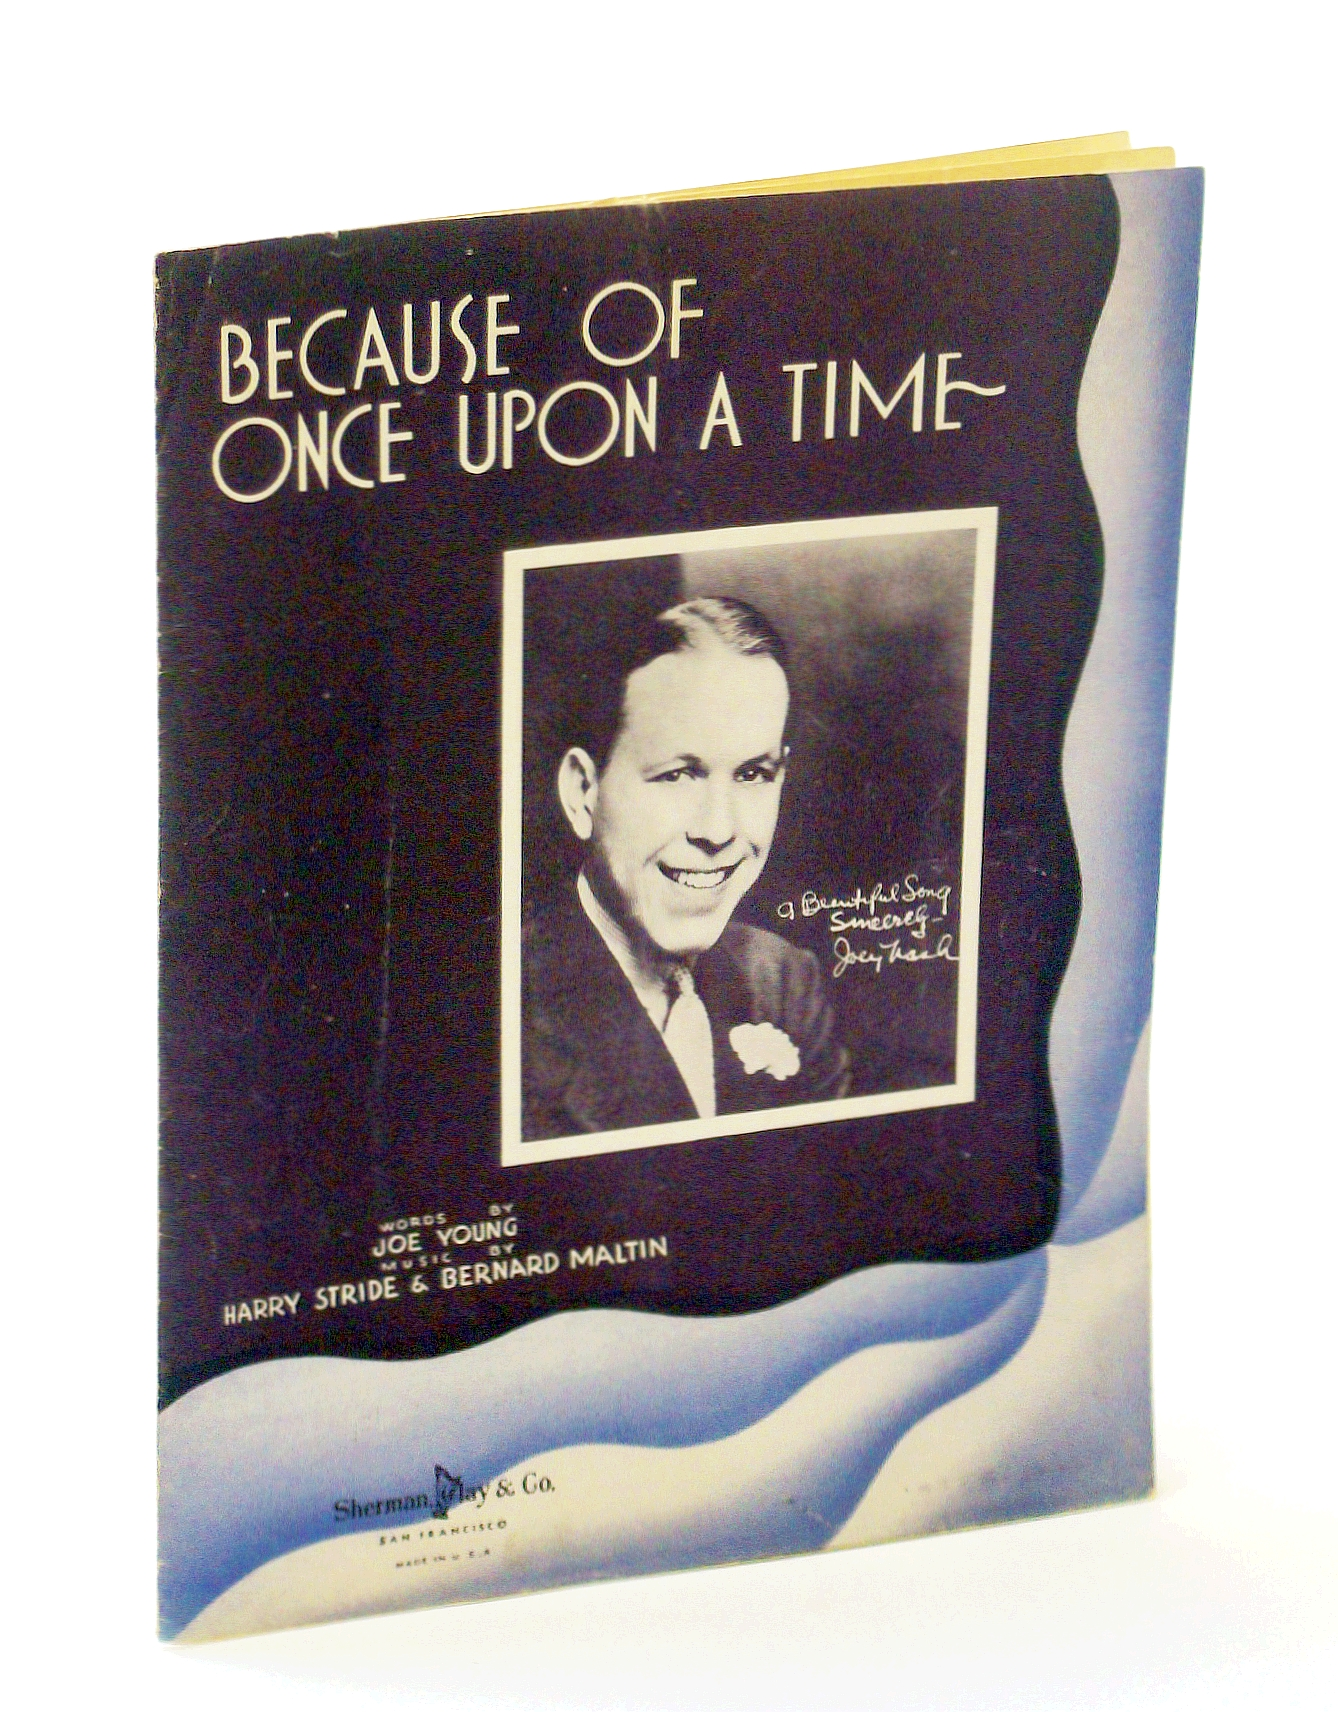 Image for Because of Once Upon a Time: Sheet Music for Voice and Piano with Guitar Chords